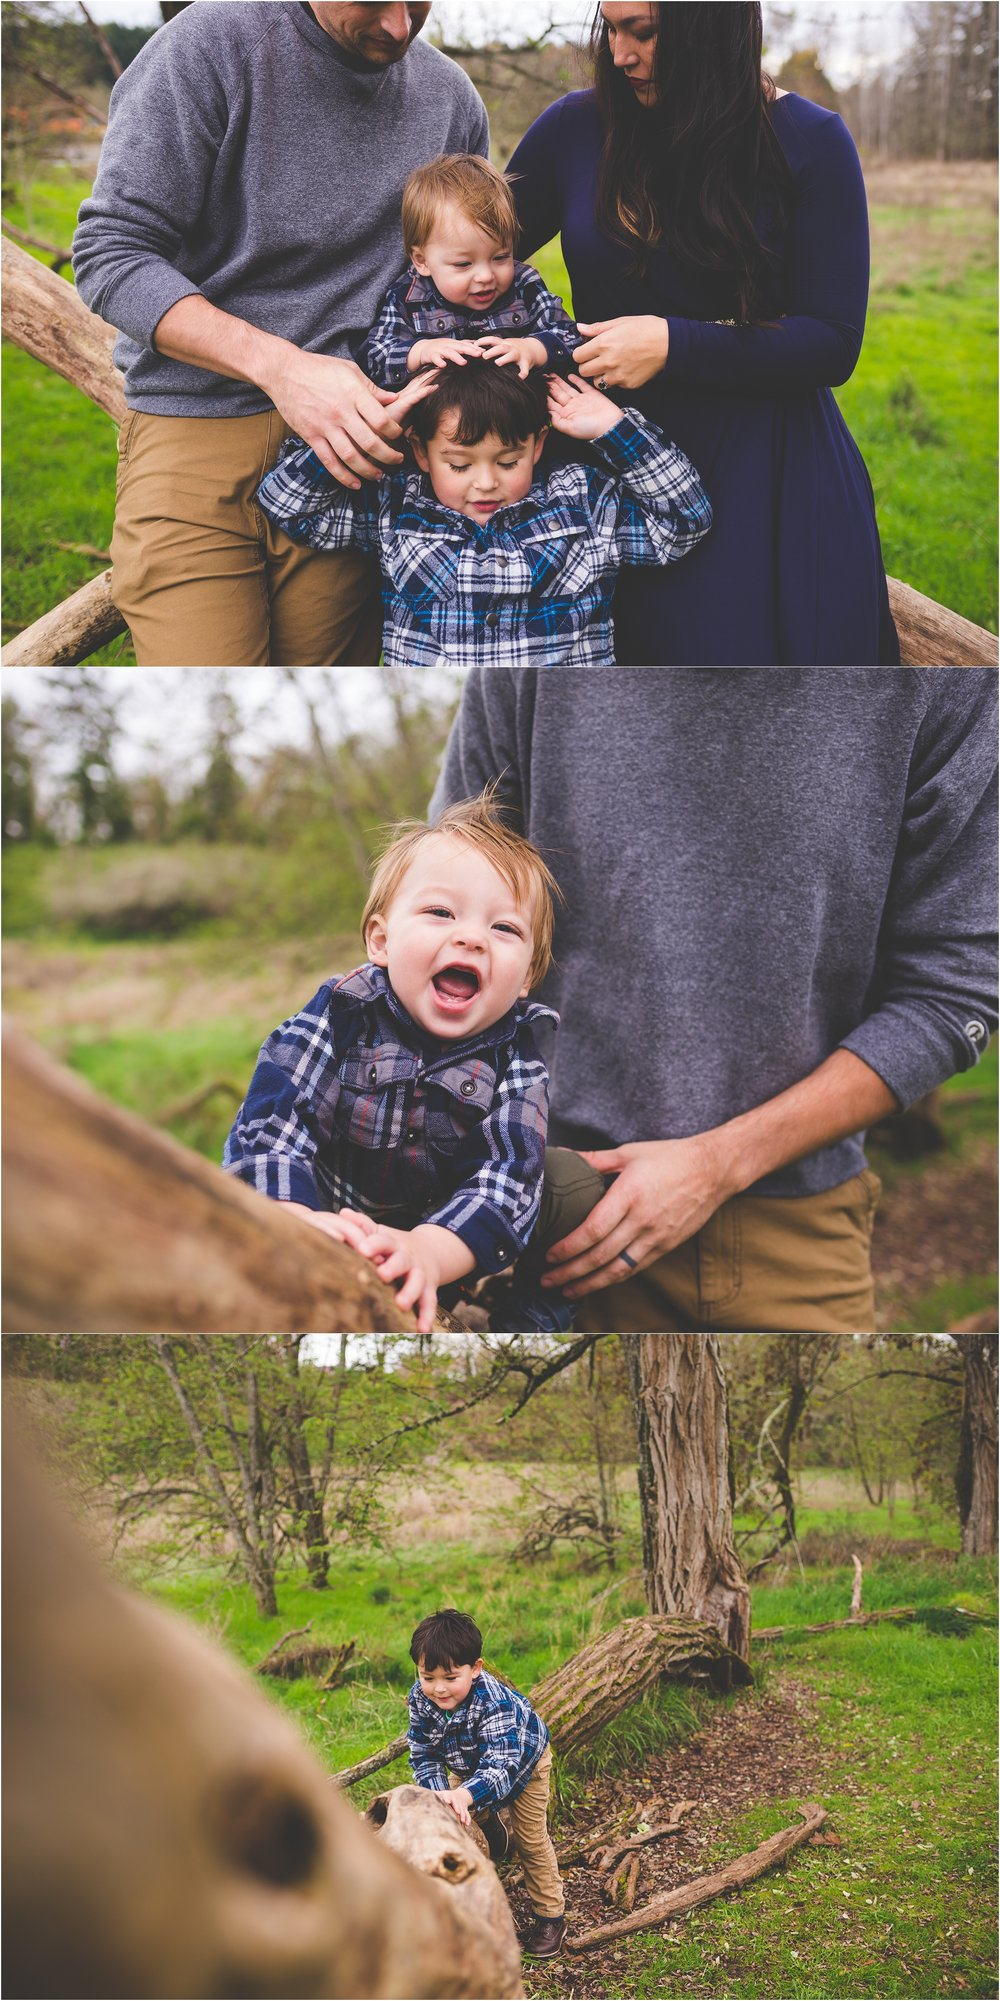 fort-steilacoom-park-family-session-jannicka-mayte-pacific-northwest-lifestyle-photographer_0035.jpg